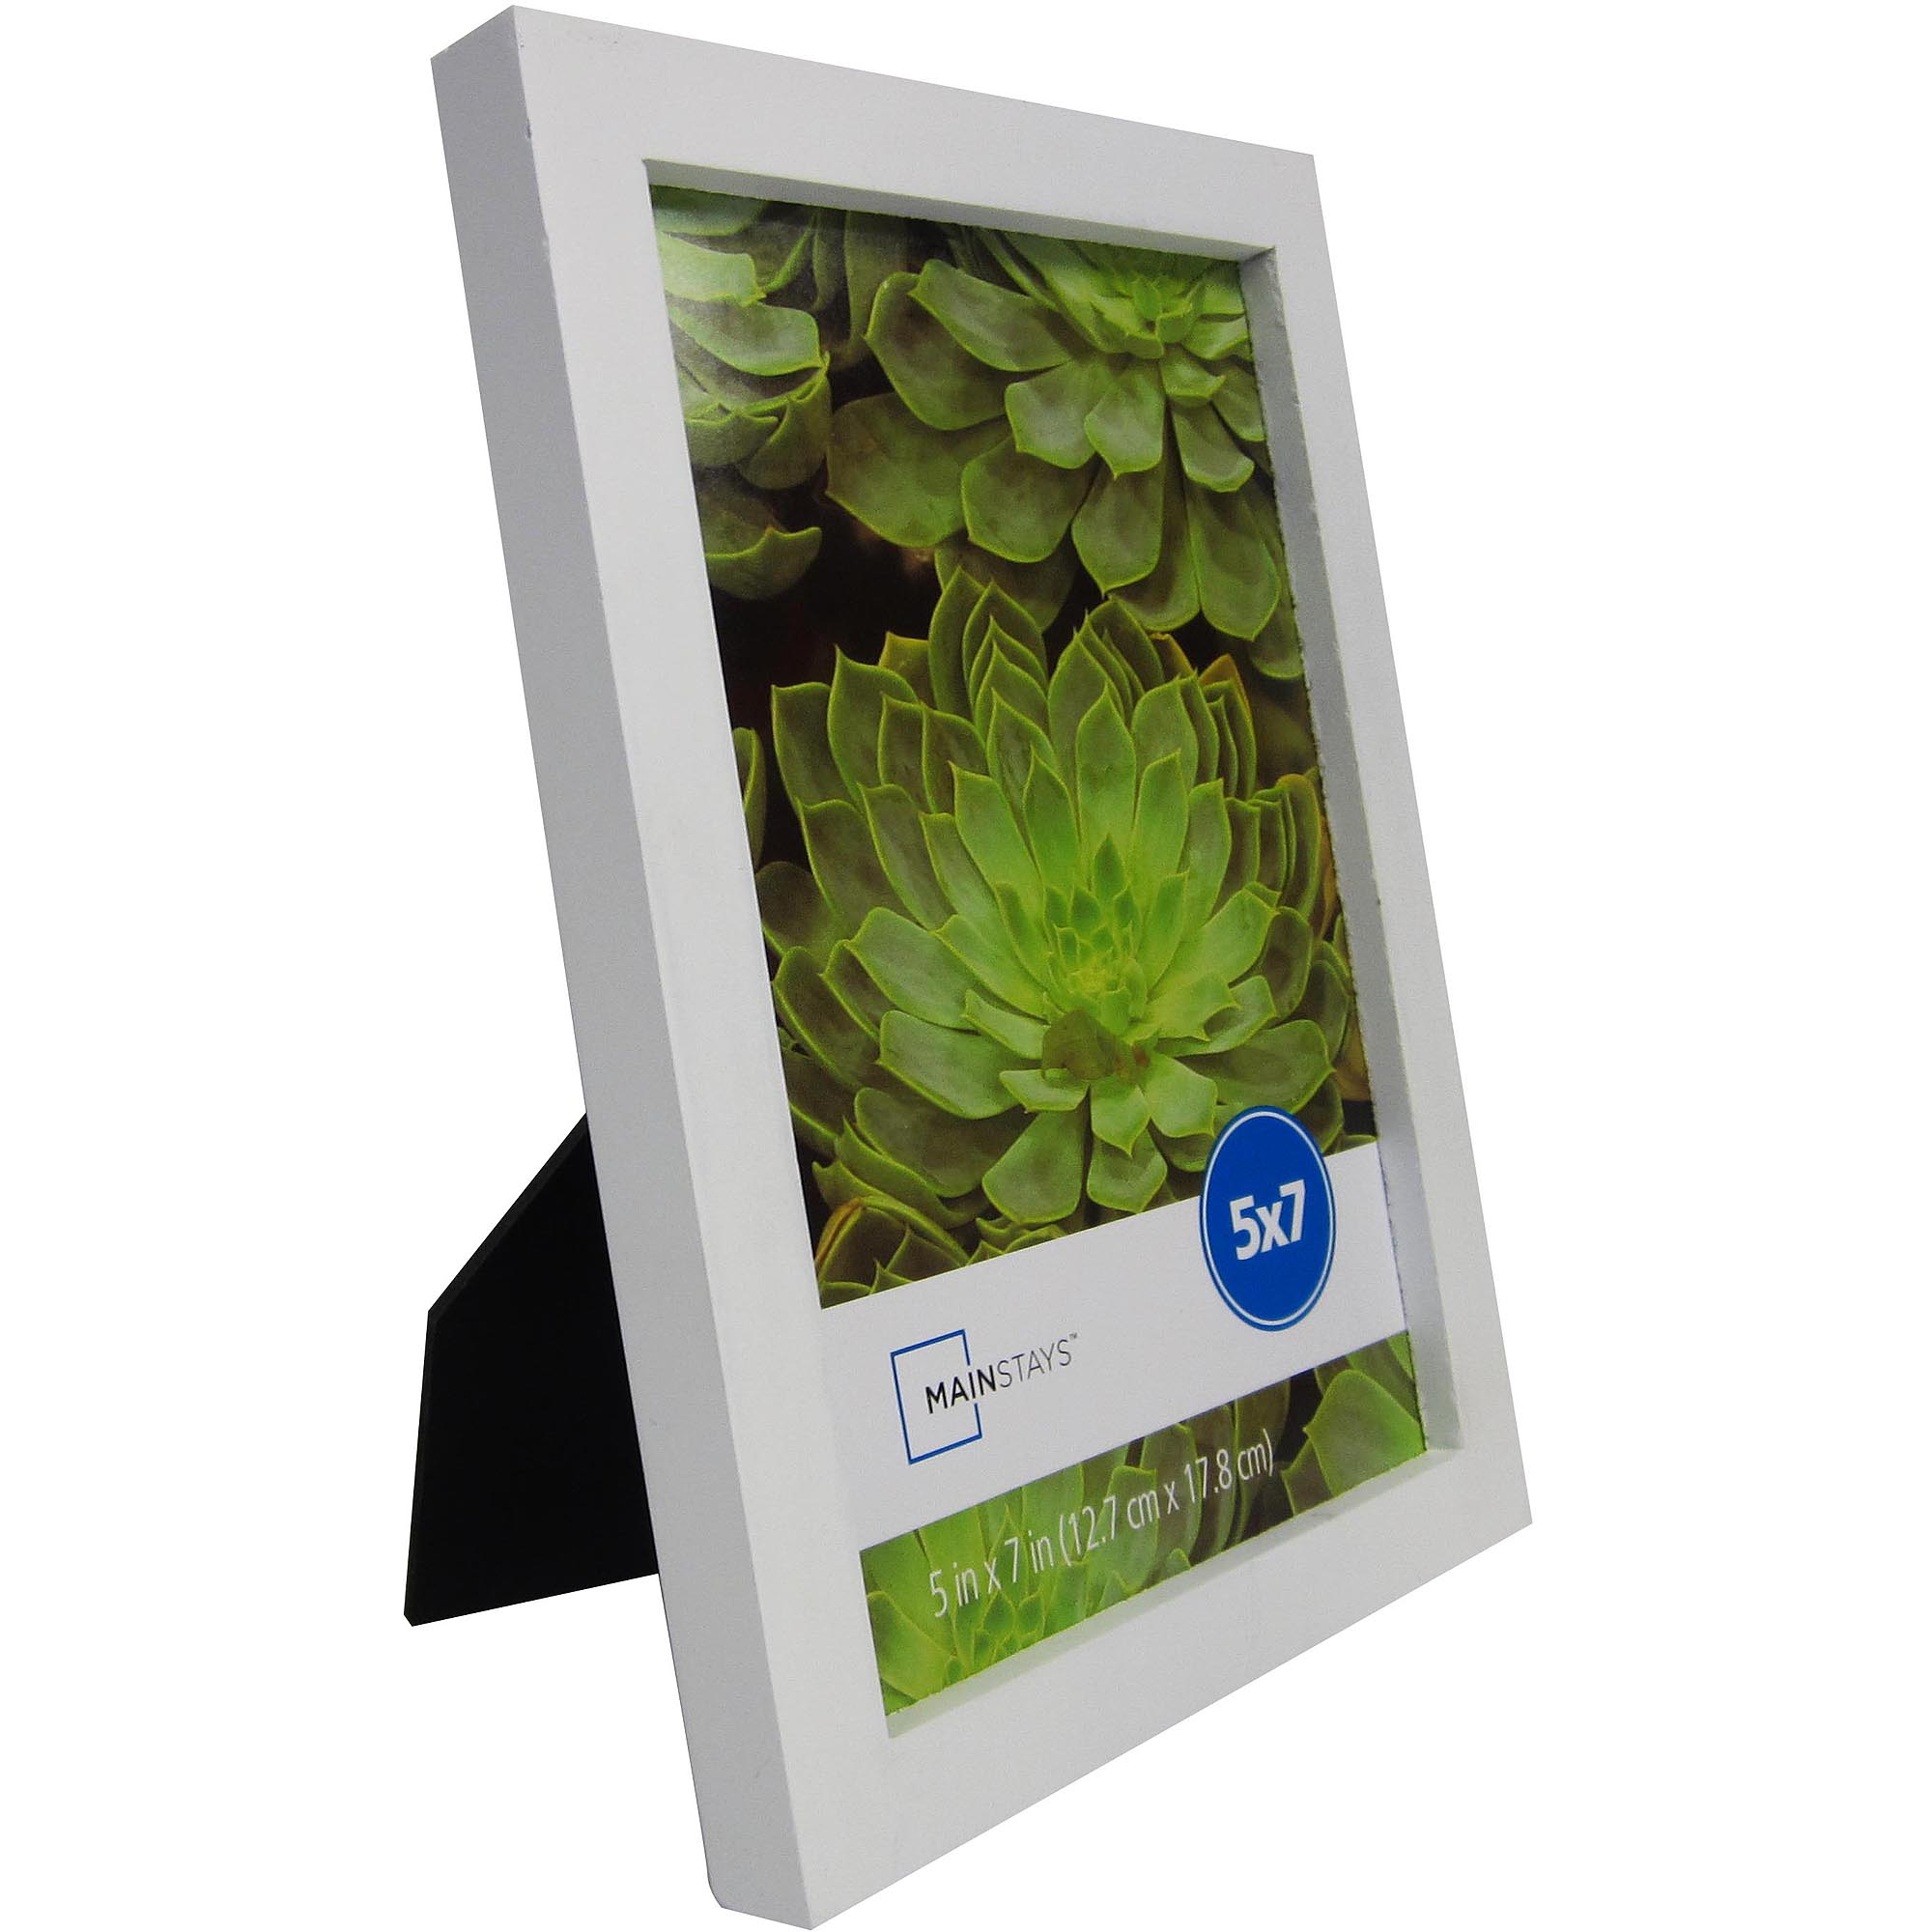 Mainstays Linear 5x7 Frames, White, 3-Pack